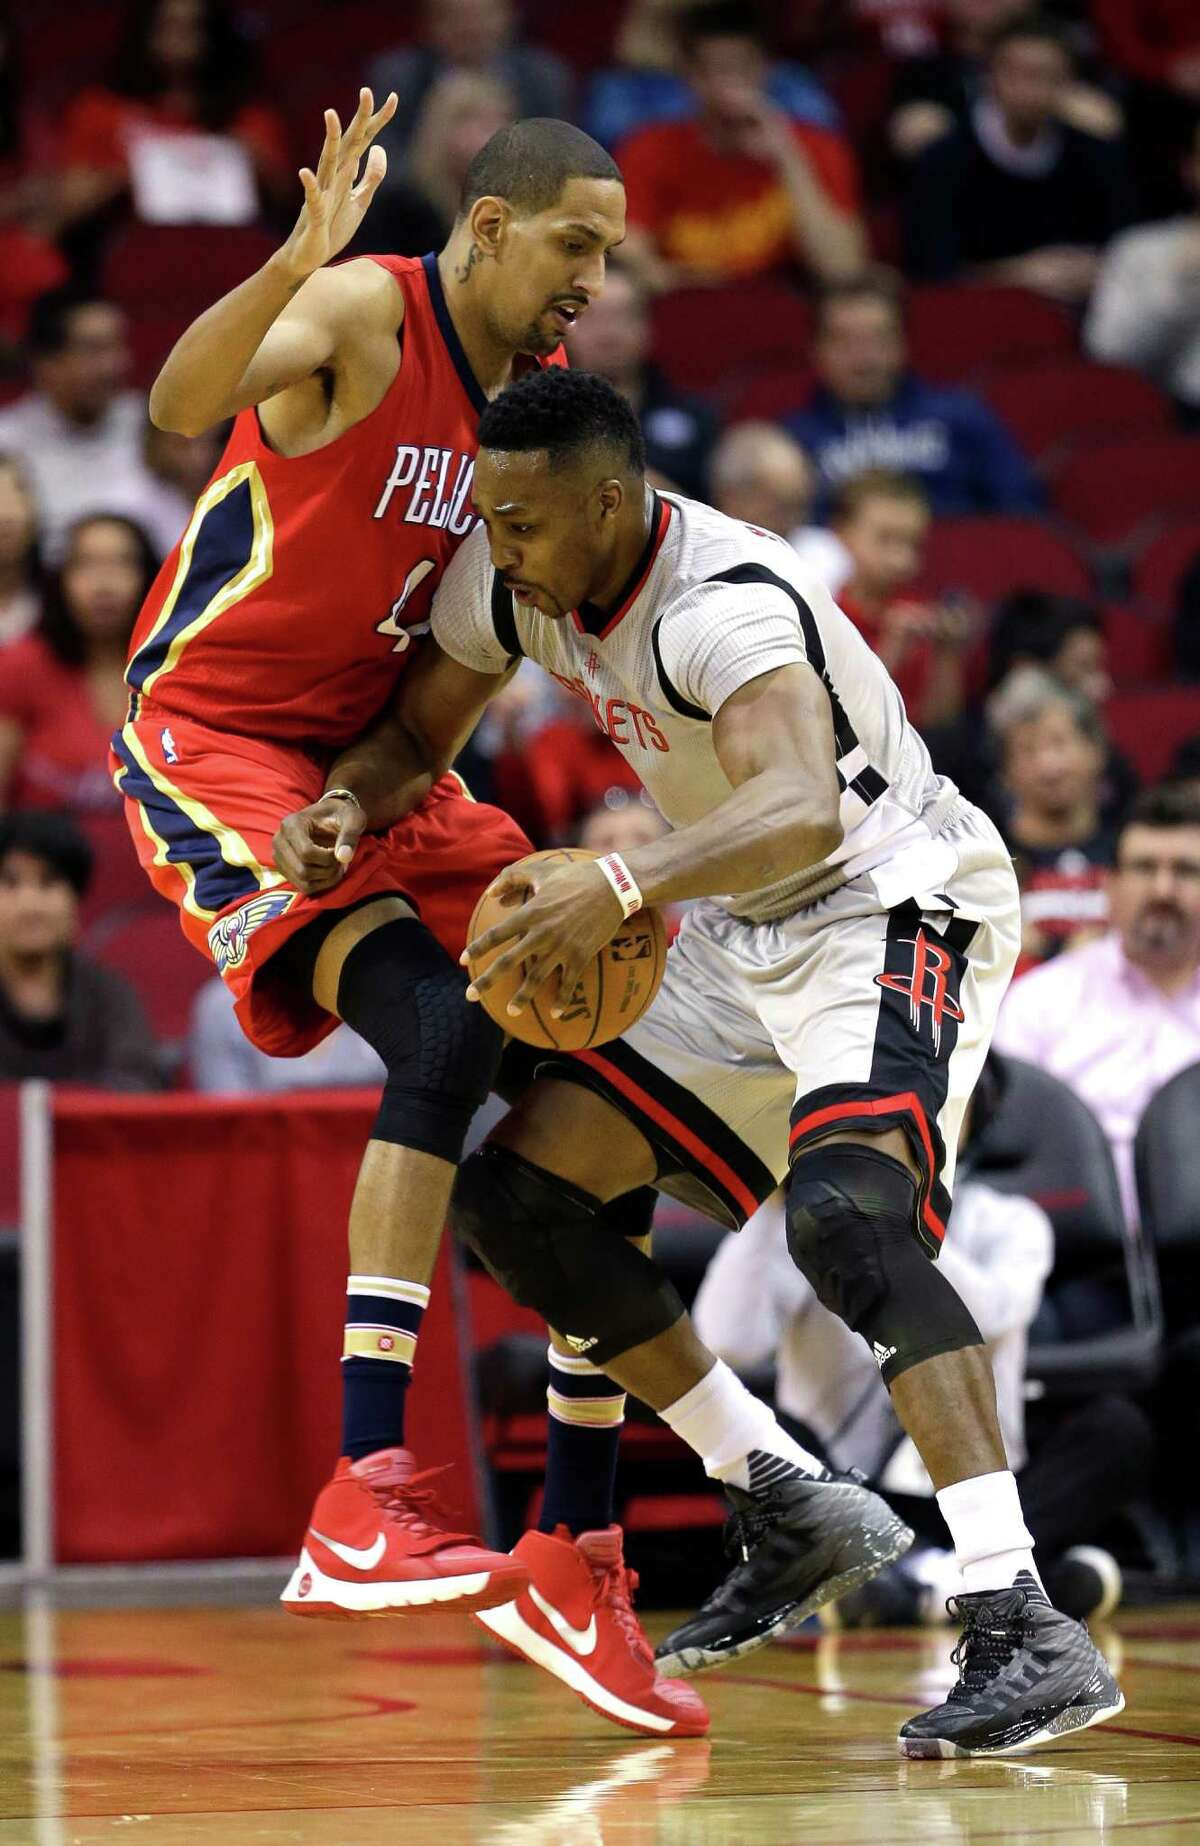 Rockets center Dwight Howard, right, gets leverage as the Pelicans' Alexis Ajinca tries to stand his ground. Howard muscled up inside to score 16 points on 5-of-6 shooting. He was 6-for-10 from the free-throw line.